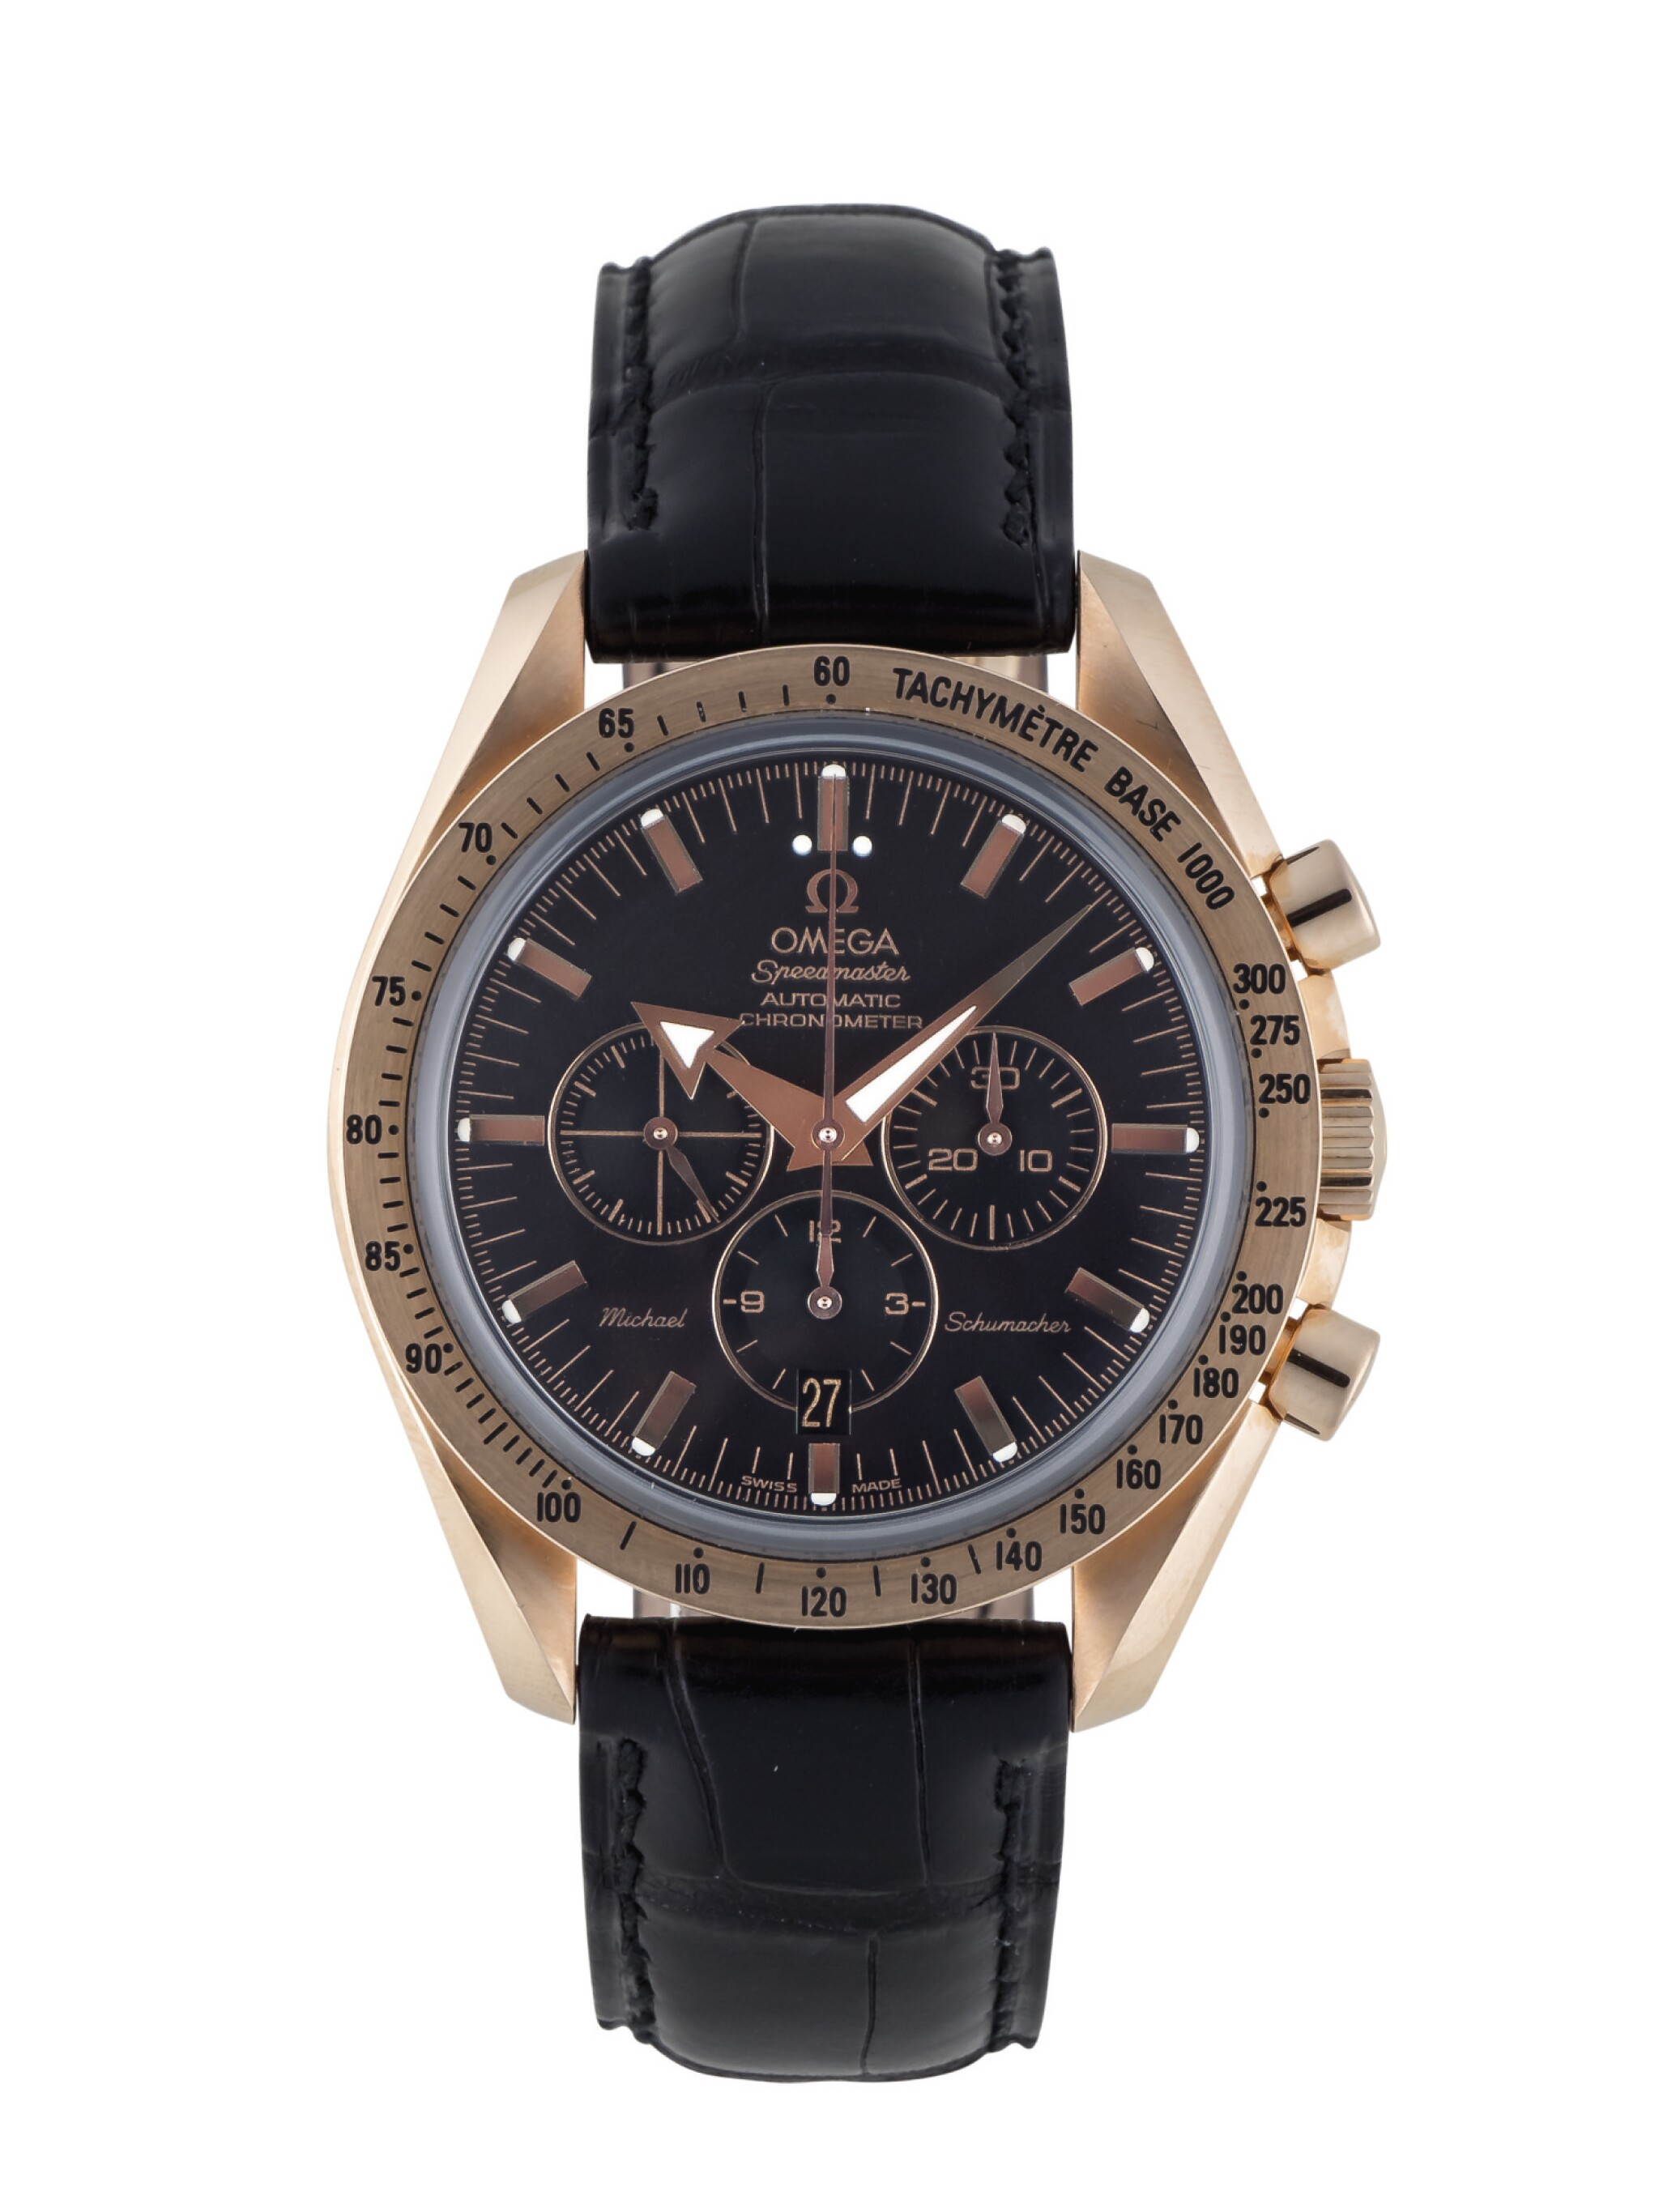 View full screen - View 1 of Lot 12. OMEGA   SPEEDMASTER MICHAEL SCHUMACHER LIMITED EDITION PINK GOLD CHRONOGRAPH WRISTWATCH WITH DATE CIRCA 2003.